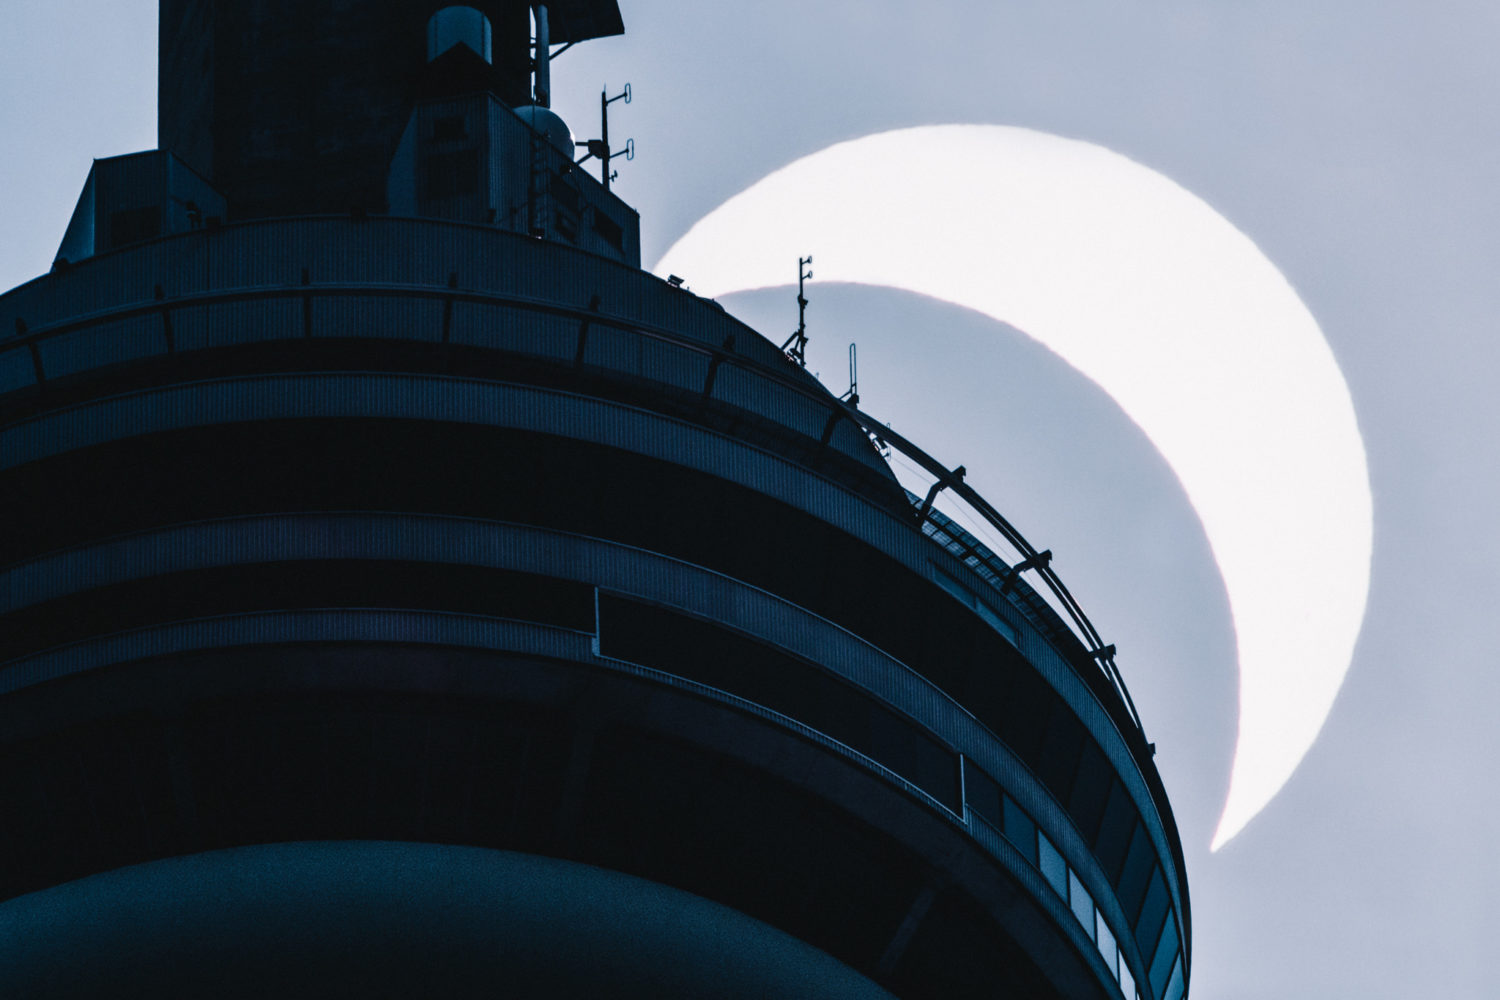 How I Shot the Eclipse & the CN Tower